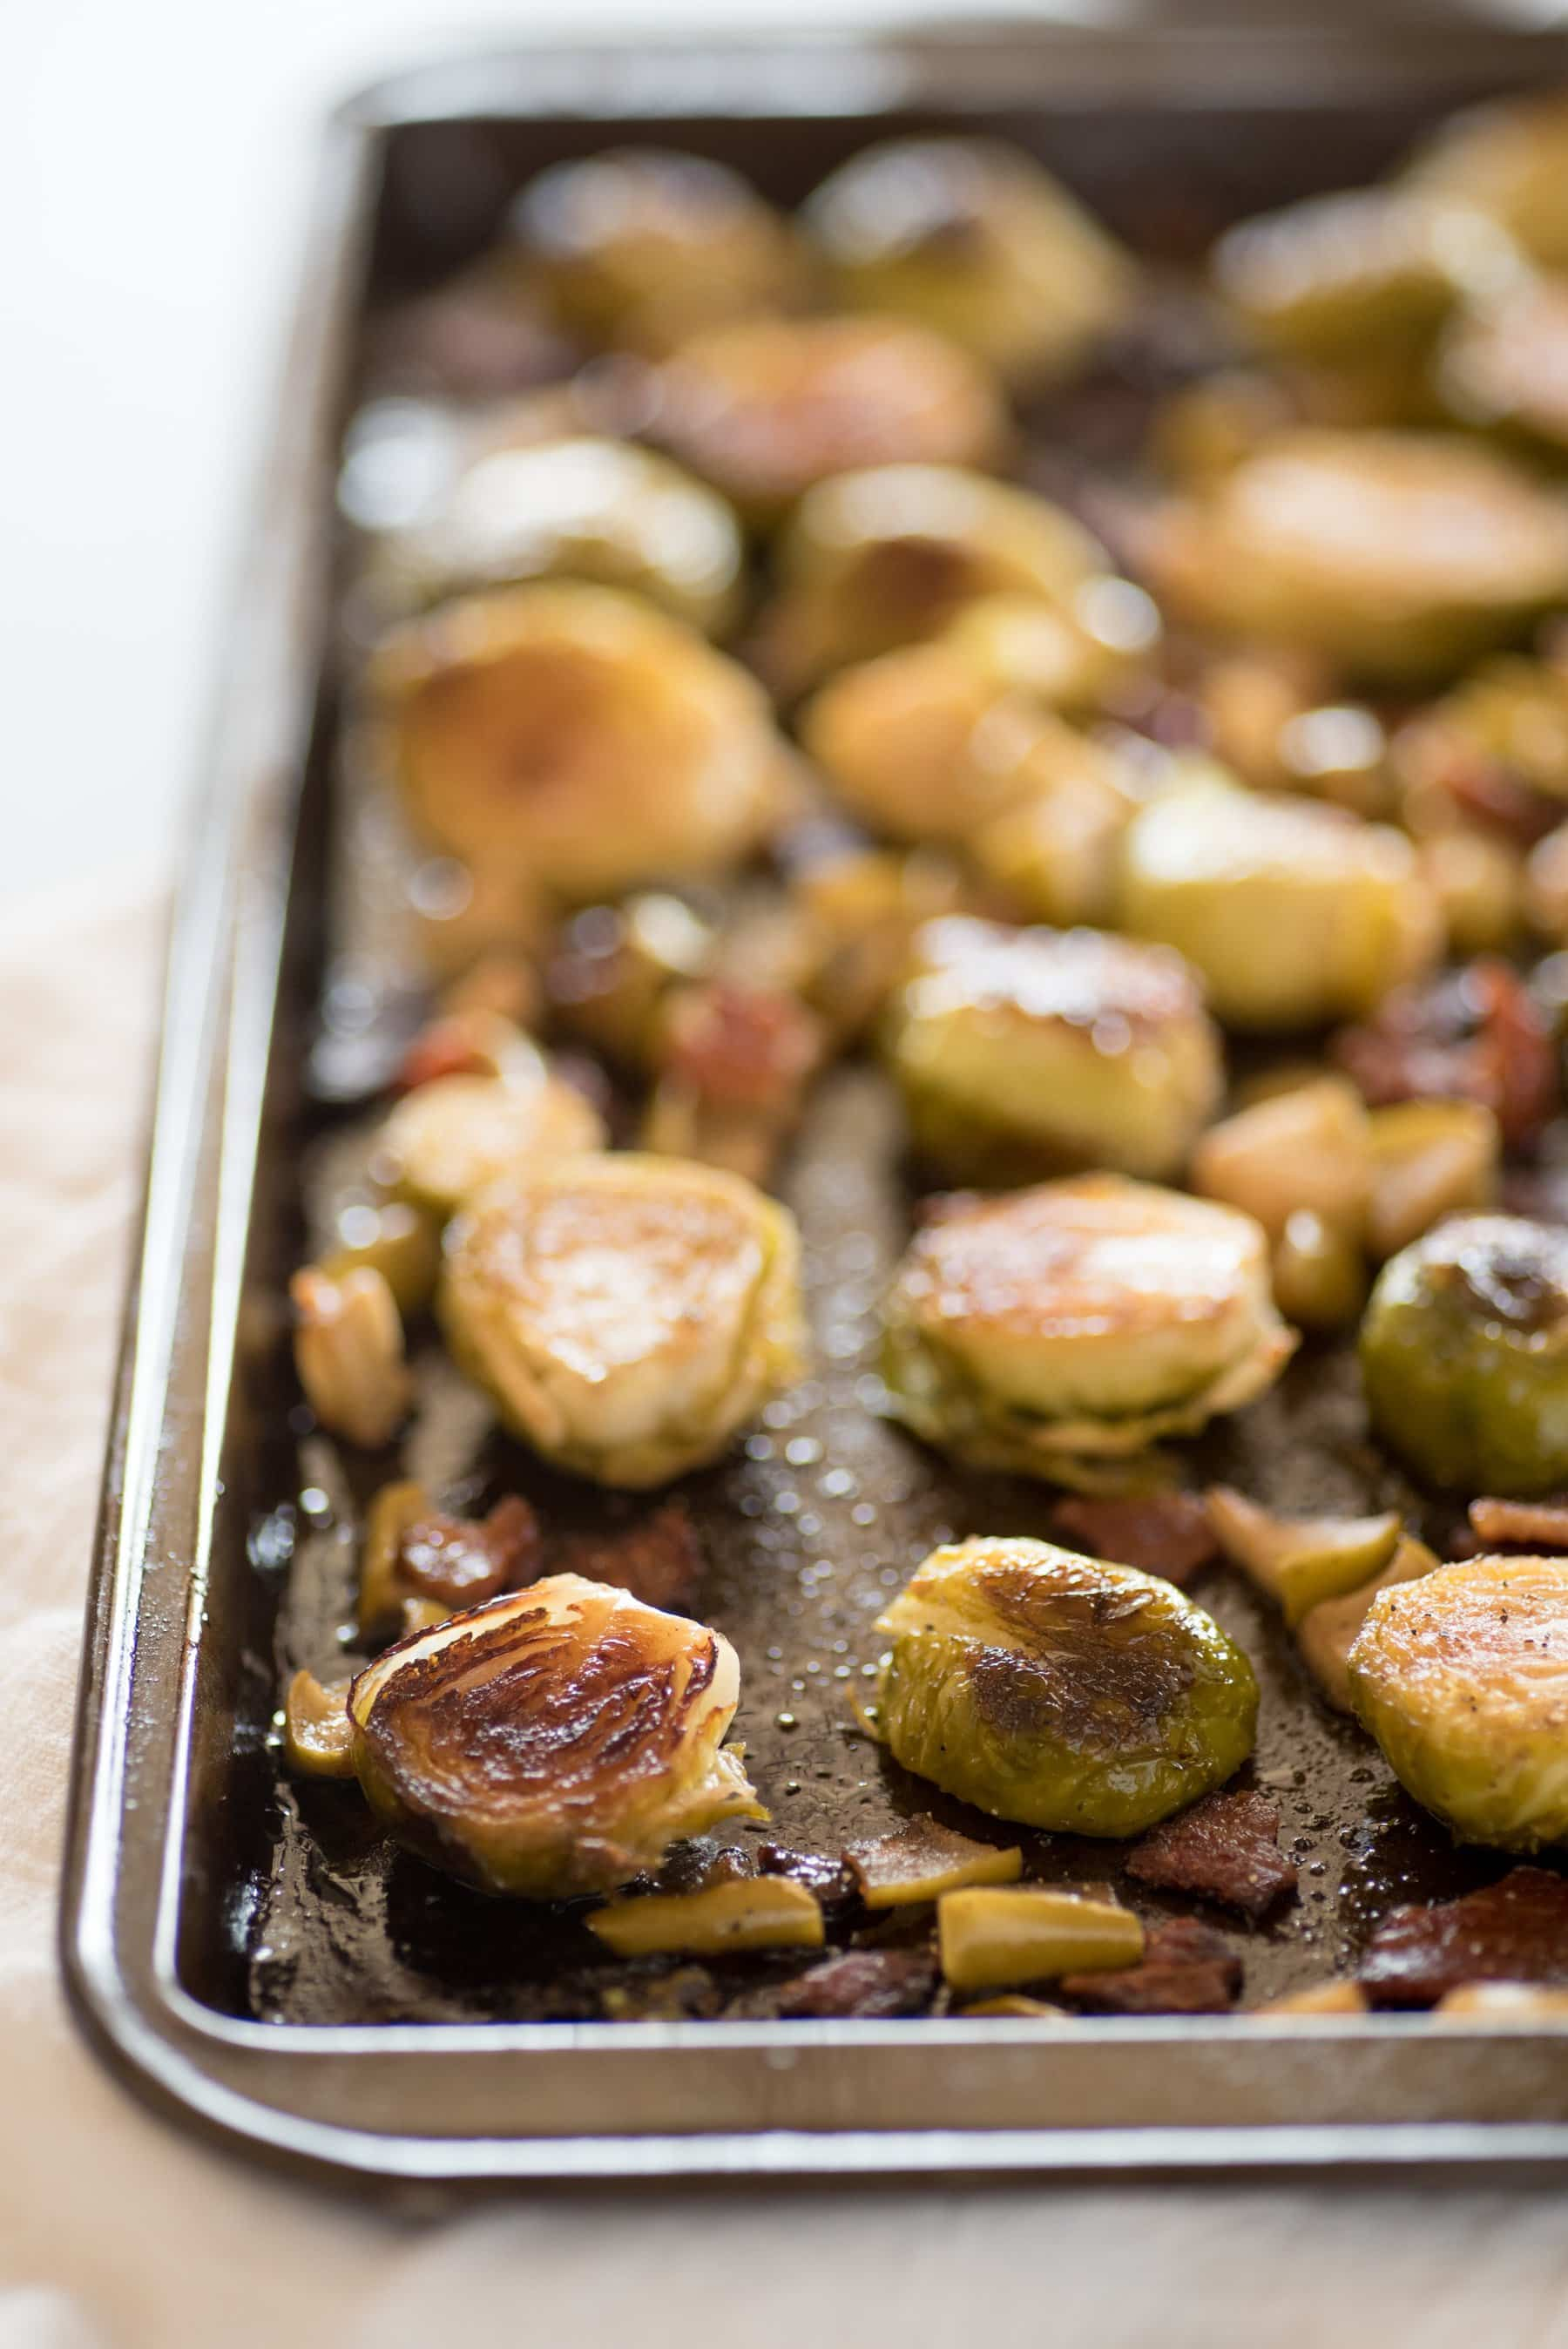 Roasted Brussels Sprouts with Apples and Bacon